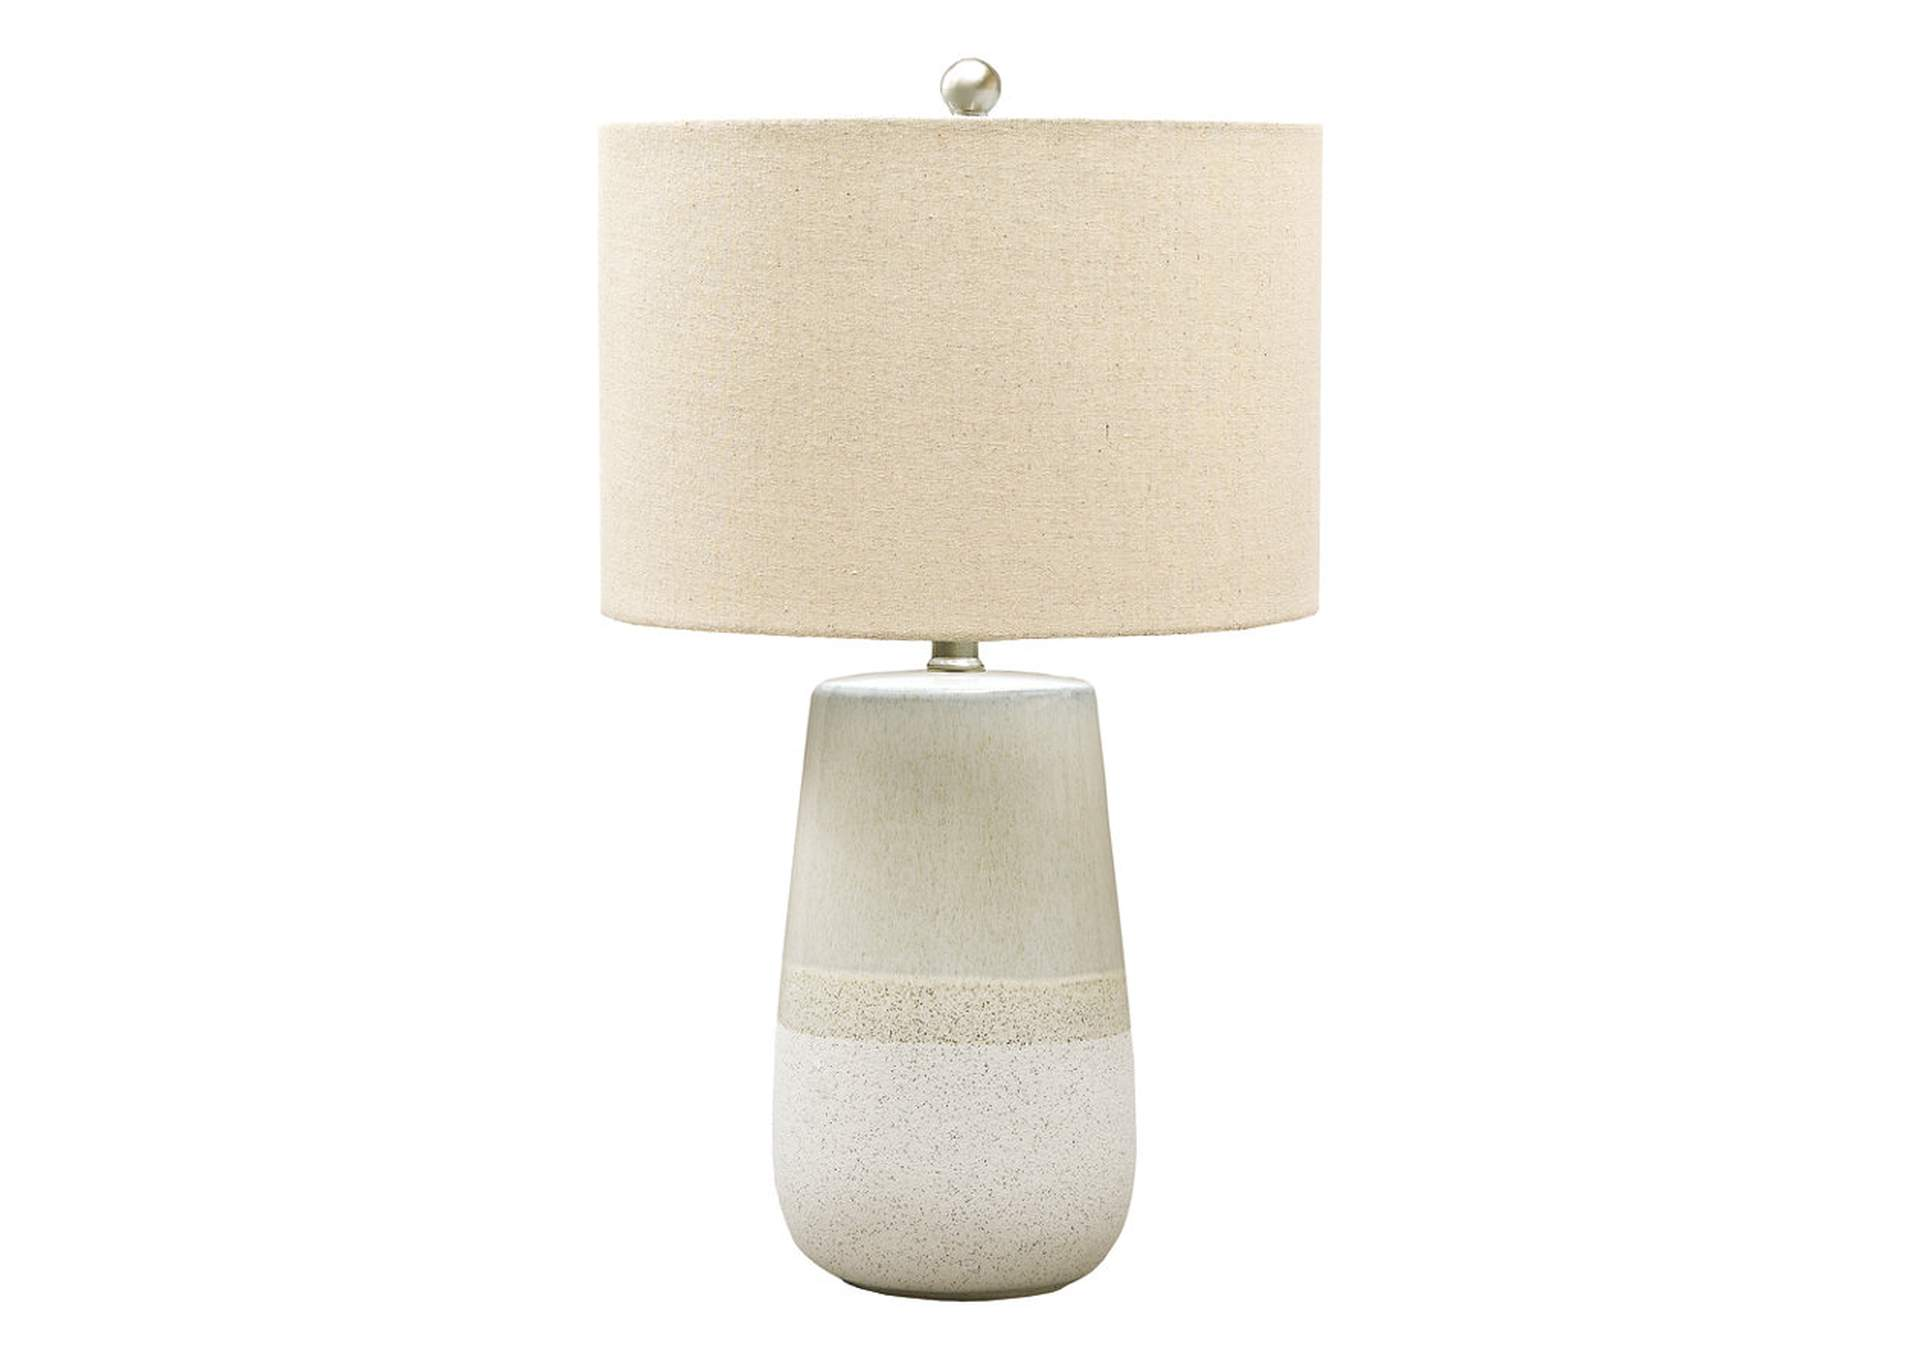 Shavon Beige/White Table Lamp,Signature Design By Ashley